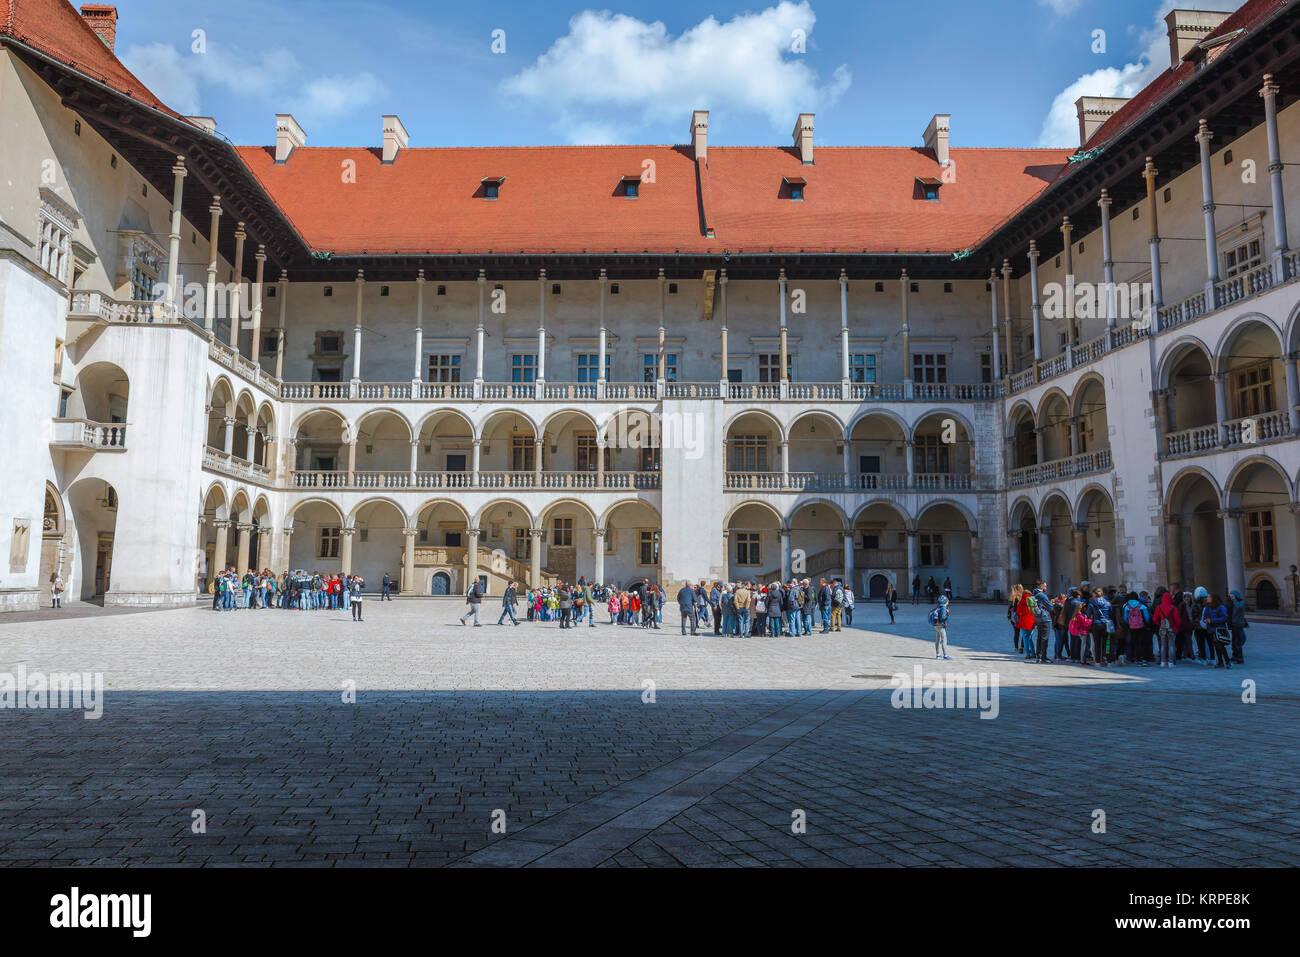 Wawel castle, the arcaded Renaissance courtyard at the centre of Wawel Royal Castle in Krakow, Poland. - Stock Image